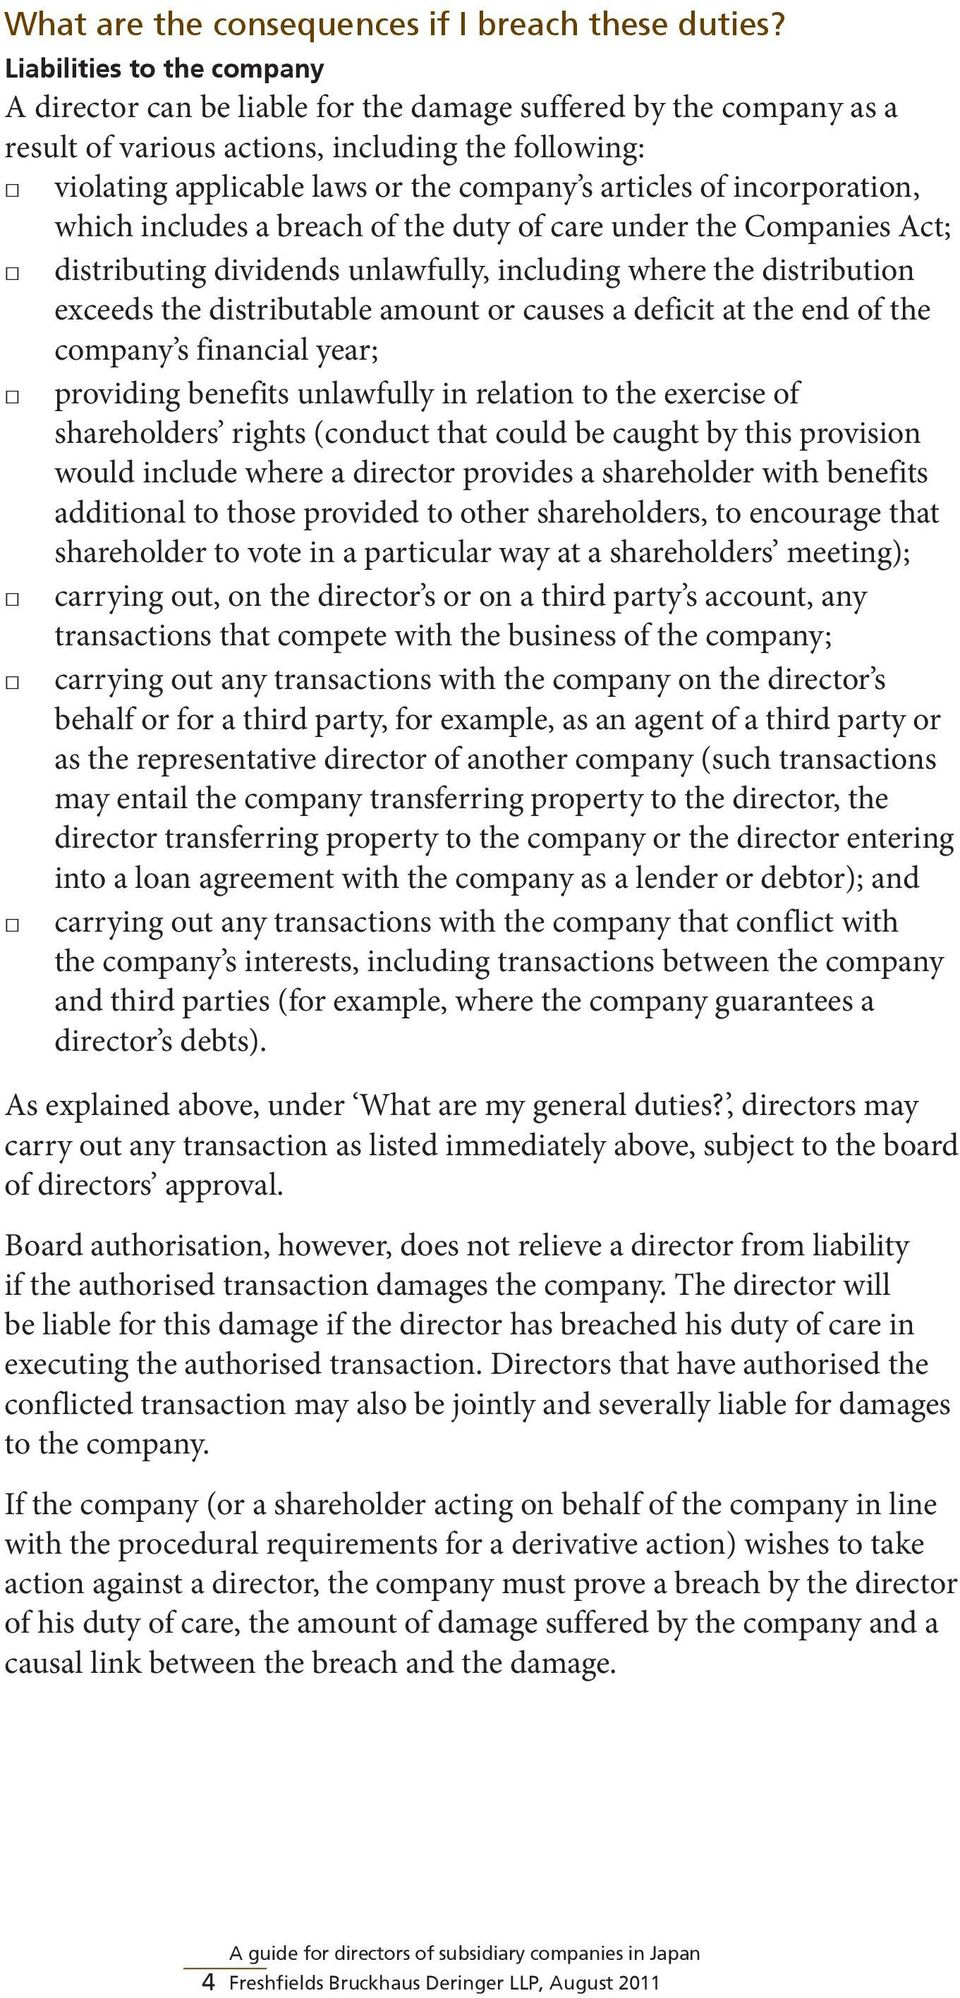 of incorporation, which includes a breach of the duty of care under the Companies Act; distributing dividends unlawfully, including where the distribution exceeds the distributable amount or causes a